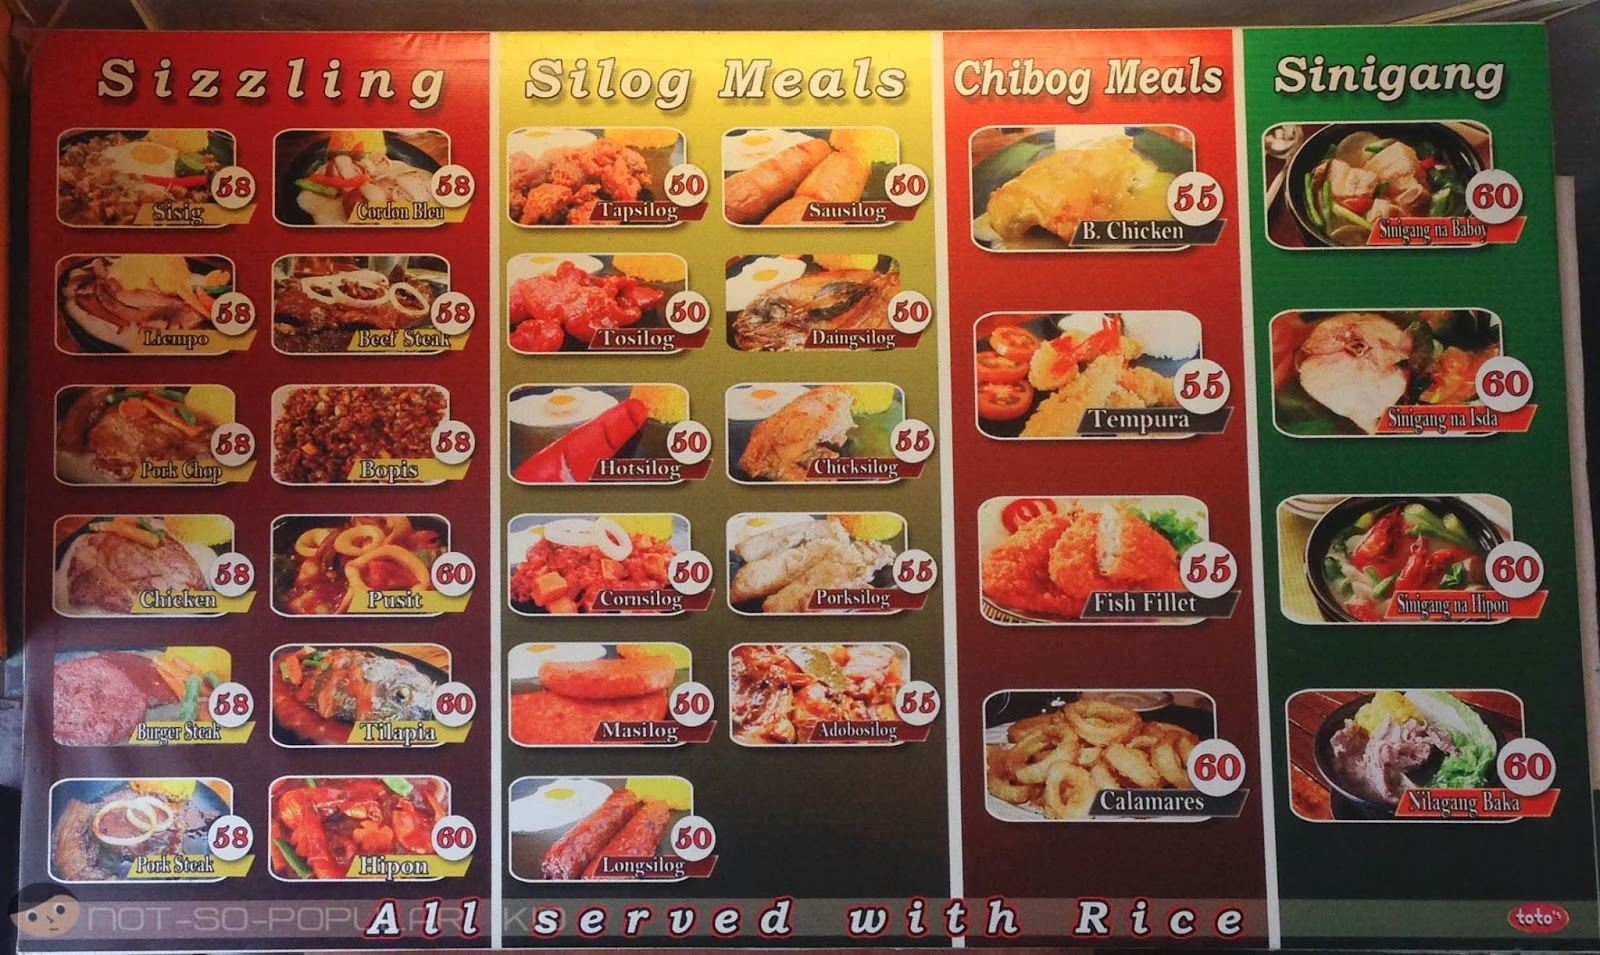 Prices of Meals in Toto's Eatery - Earnshaw Branch